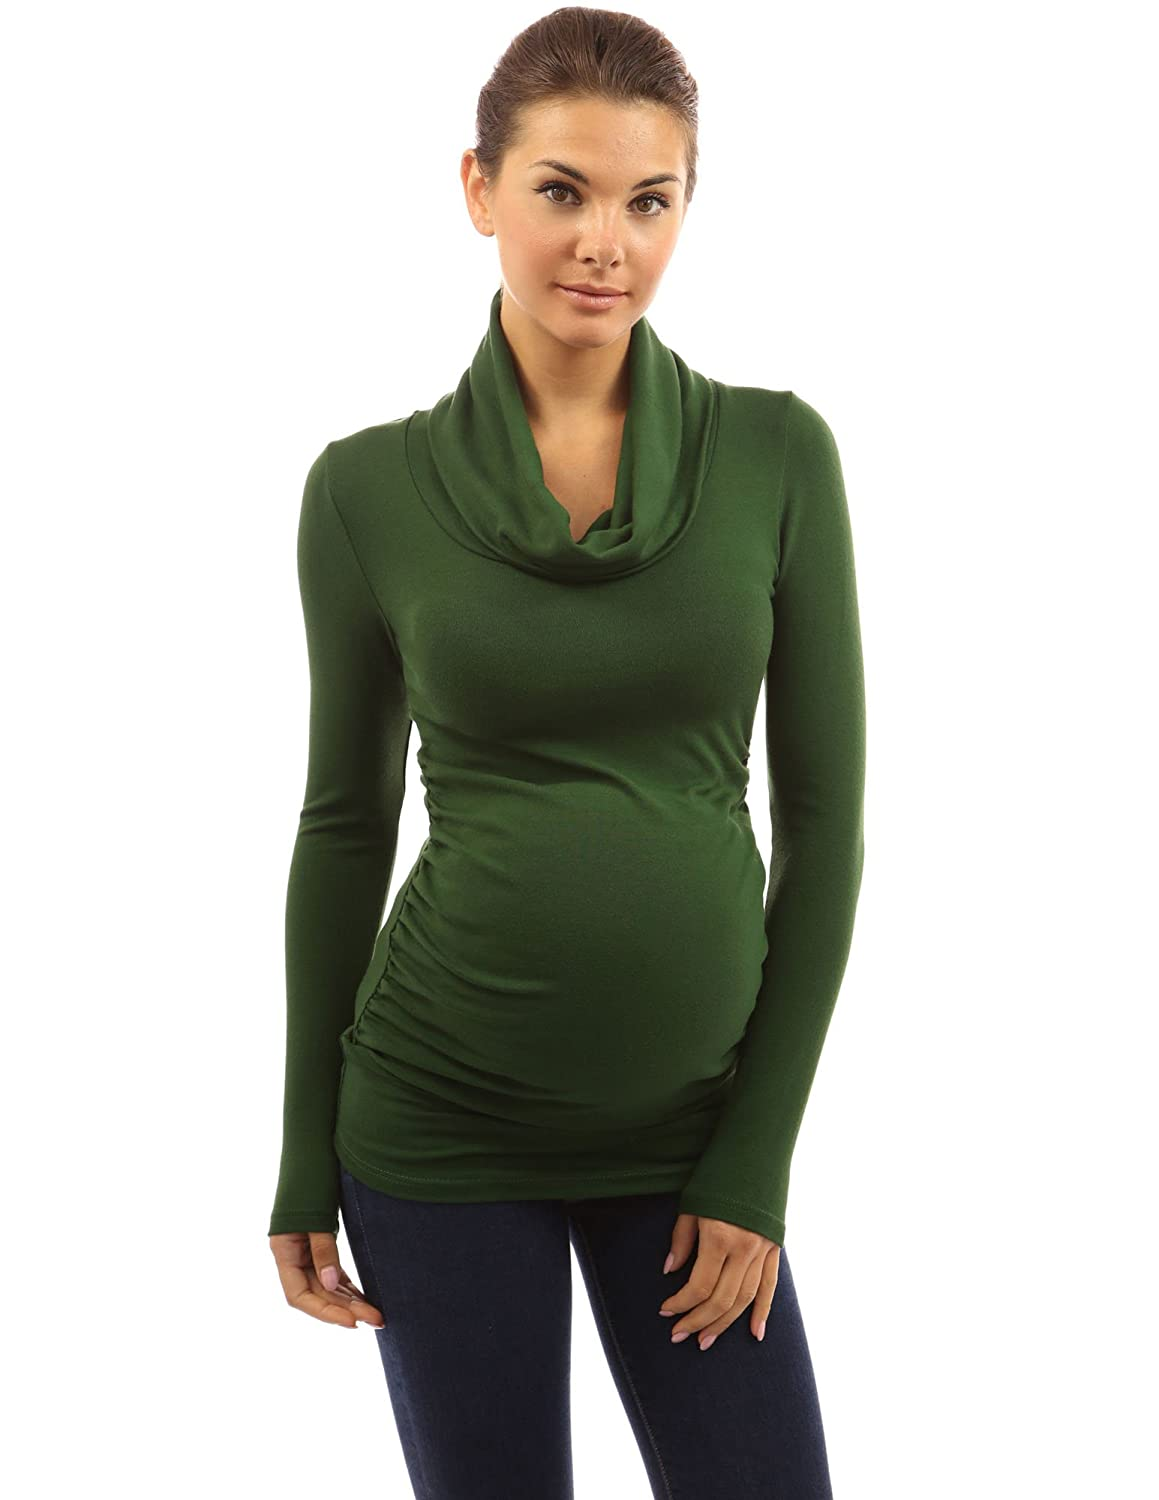 PattyBoutik Mama Cowl Neck Ruched Sides Stretch Solid Maternity Blouse Top